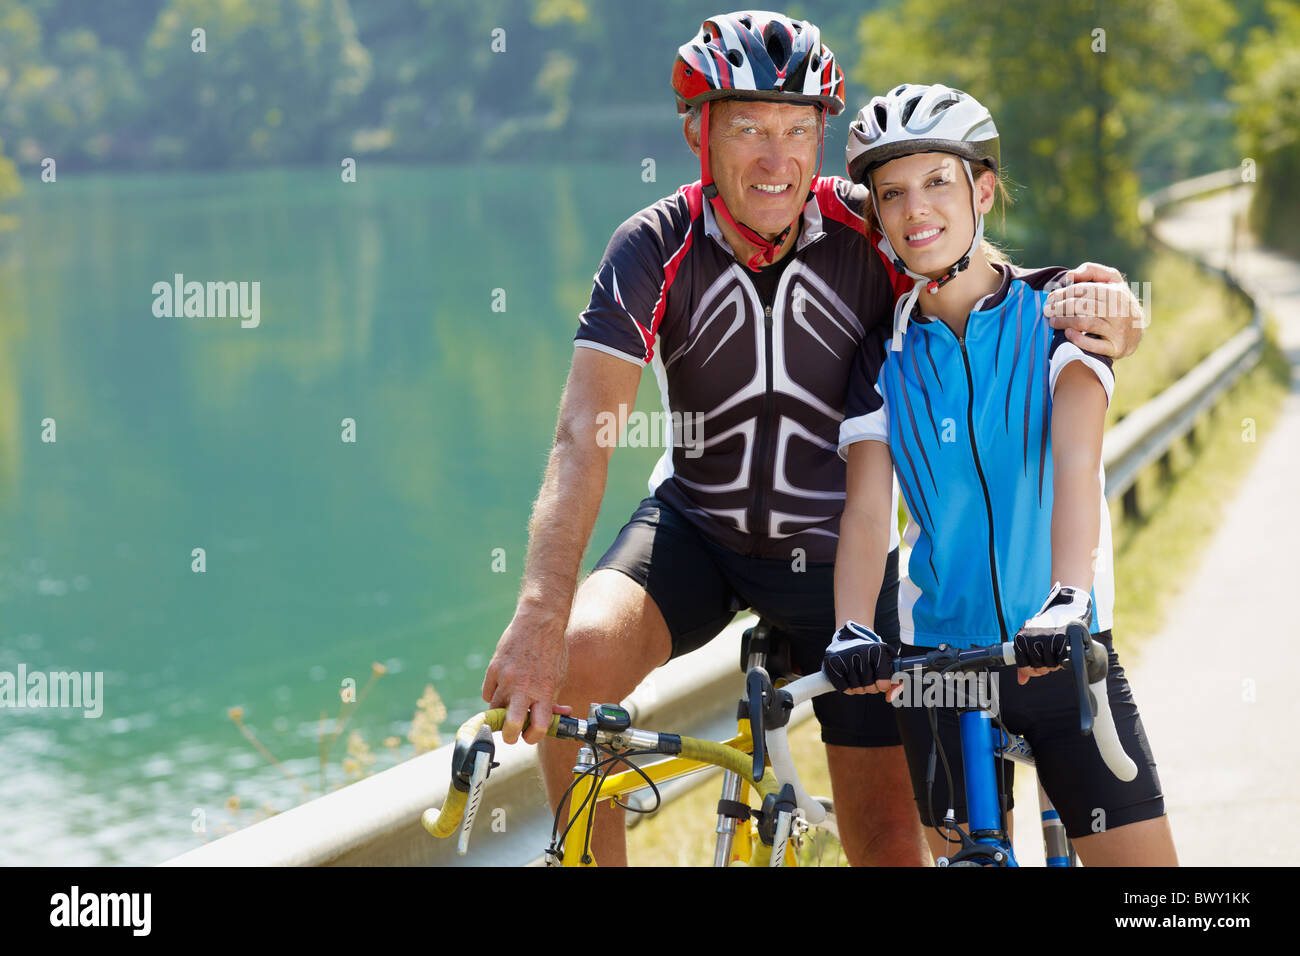 Senior man and young woman on road bike. Copy space - Stock Image